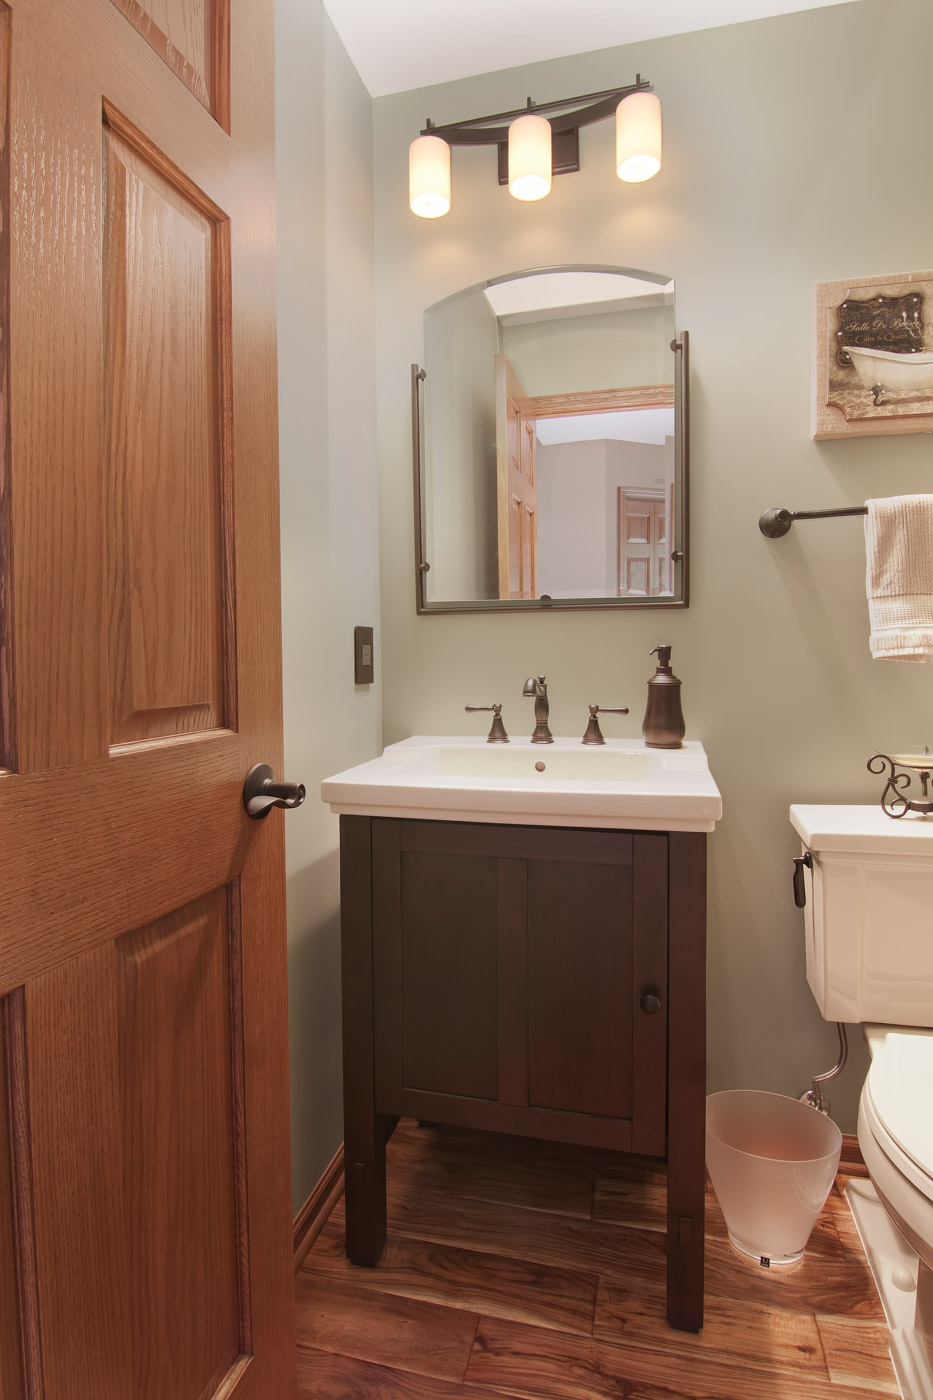 Bathroom Fixtures Twin Cities bathroom remodeling portfolio & gallery | james barton design-build